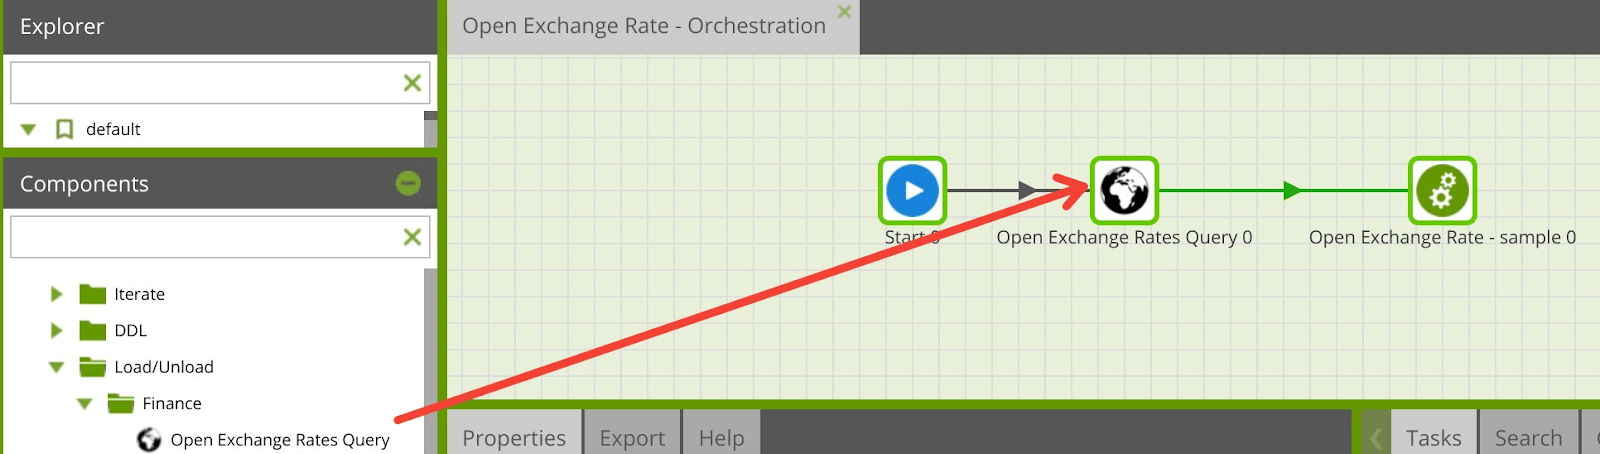 Open Exchange Rates Query component in Matillion ETL for Amazon Redshift